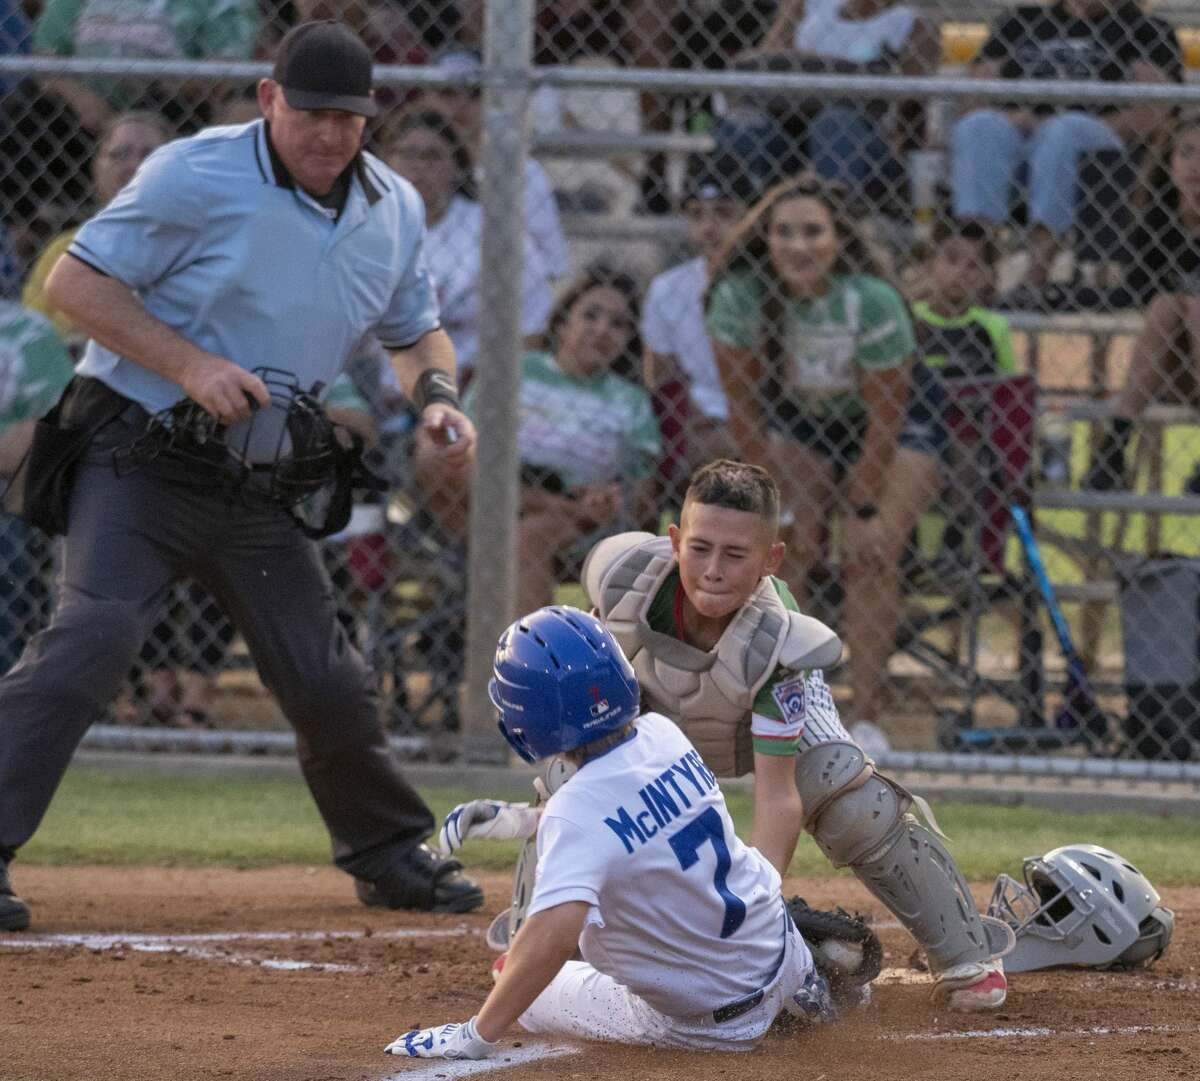 Northern's Brady McIntyre is tagged out at home by Floyd Gwin's catcher 06/24/2021 at Butler Park. Tim Fischer/Reporter-Telegram